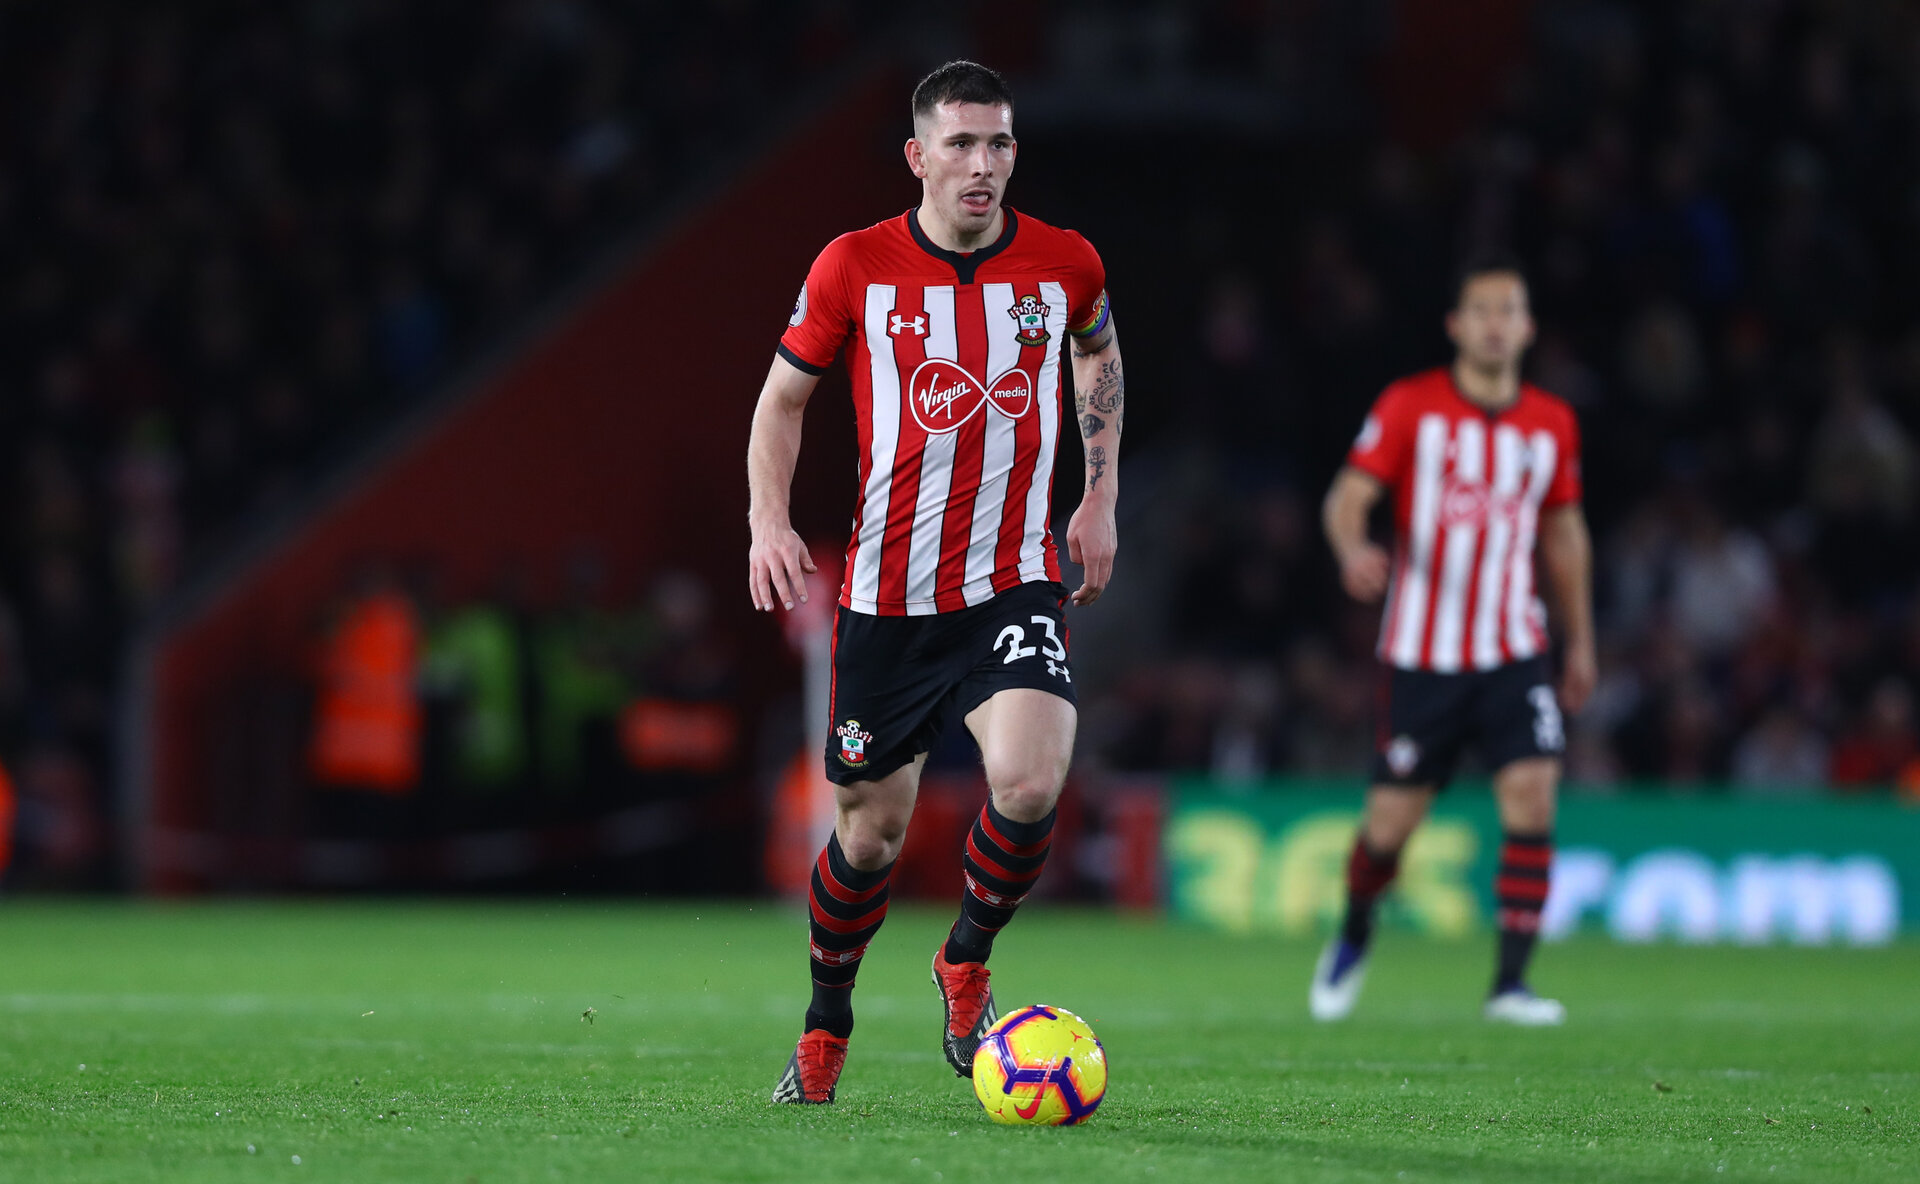 SOUTHAMPTON, ENGLAND - DECEMBER 01: Pierre-Emile Hojbjerg of Southampton during the Premier League match between Southampton FC and Manchester United at St Mary's Stadium on December 1, 2018 in Southampton, United Kingdom. (Photo by Matt Watson/Southampton FC via Getty Images)